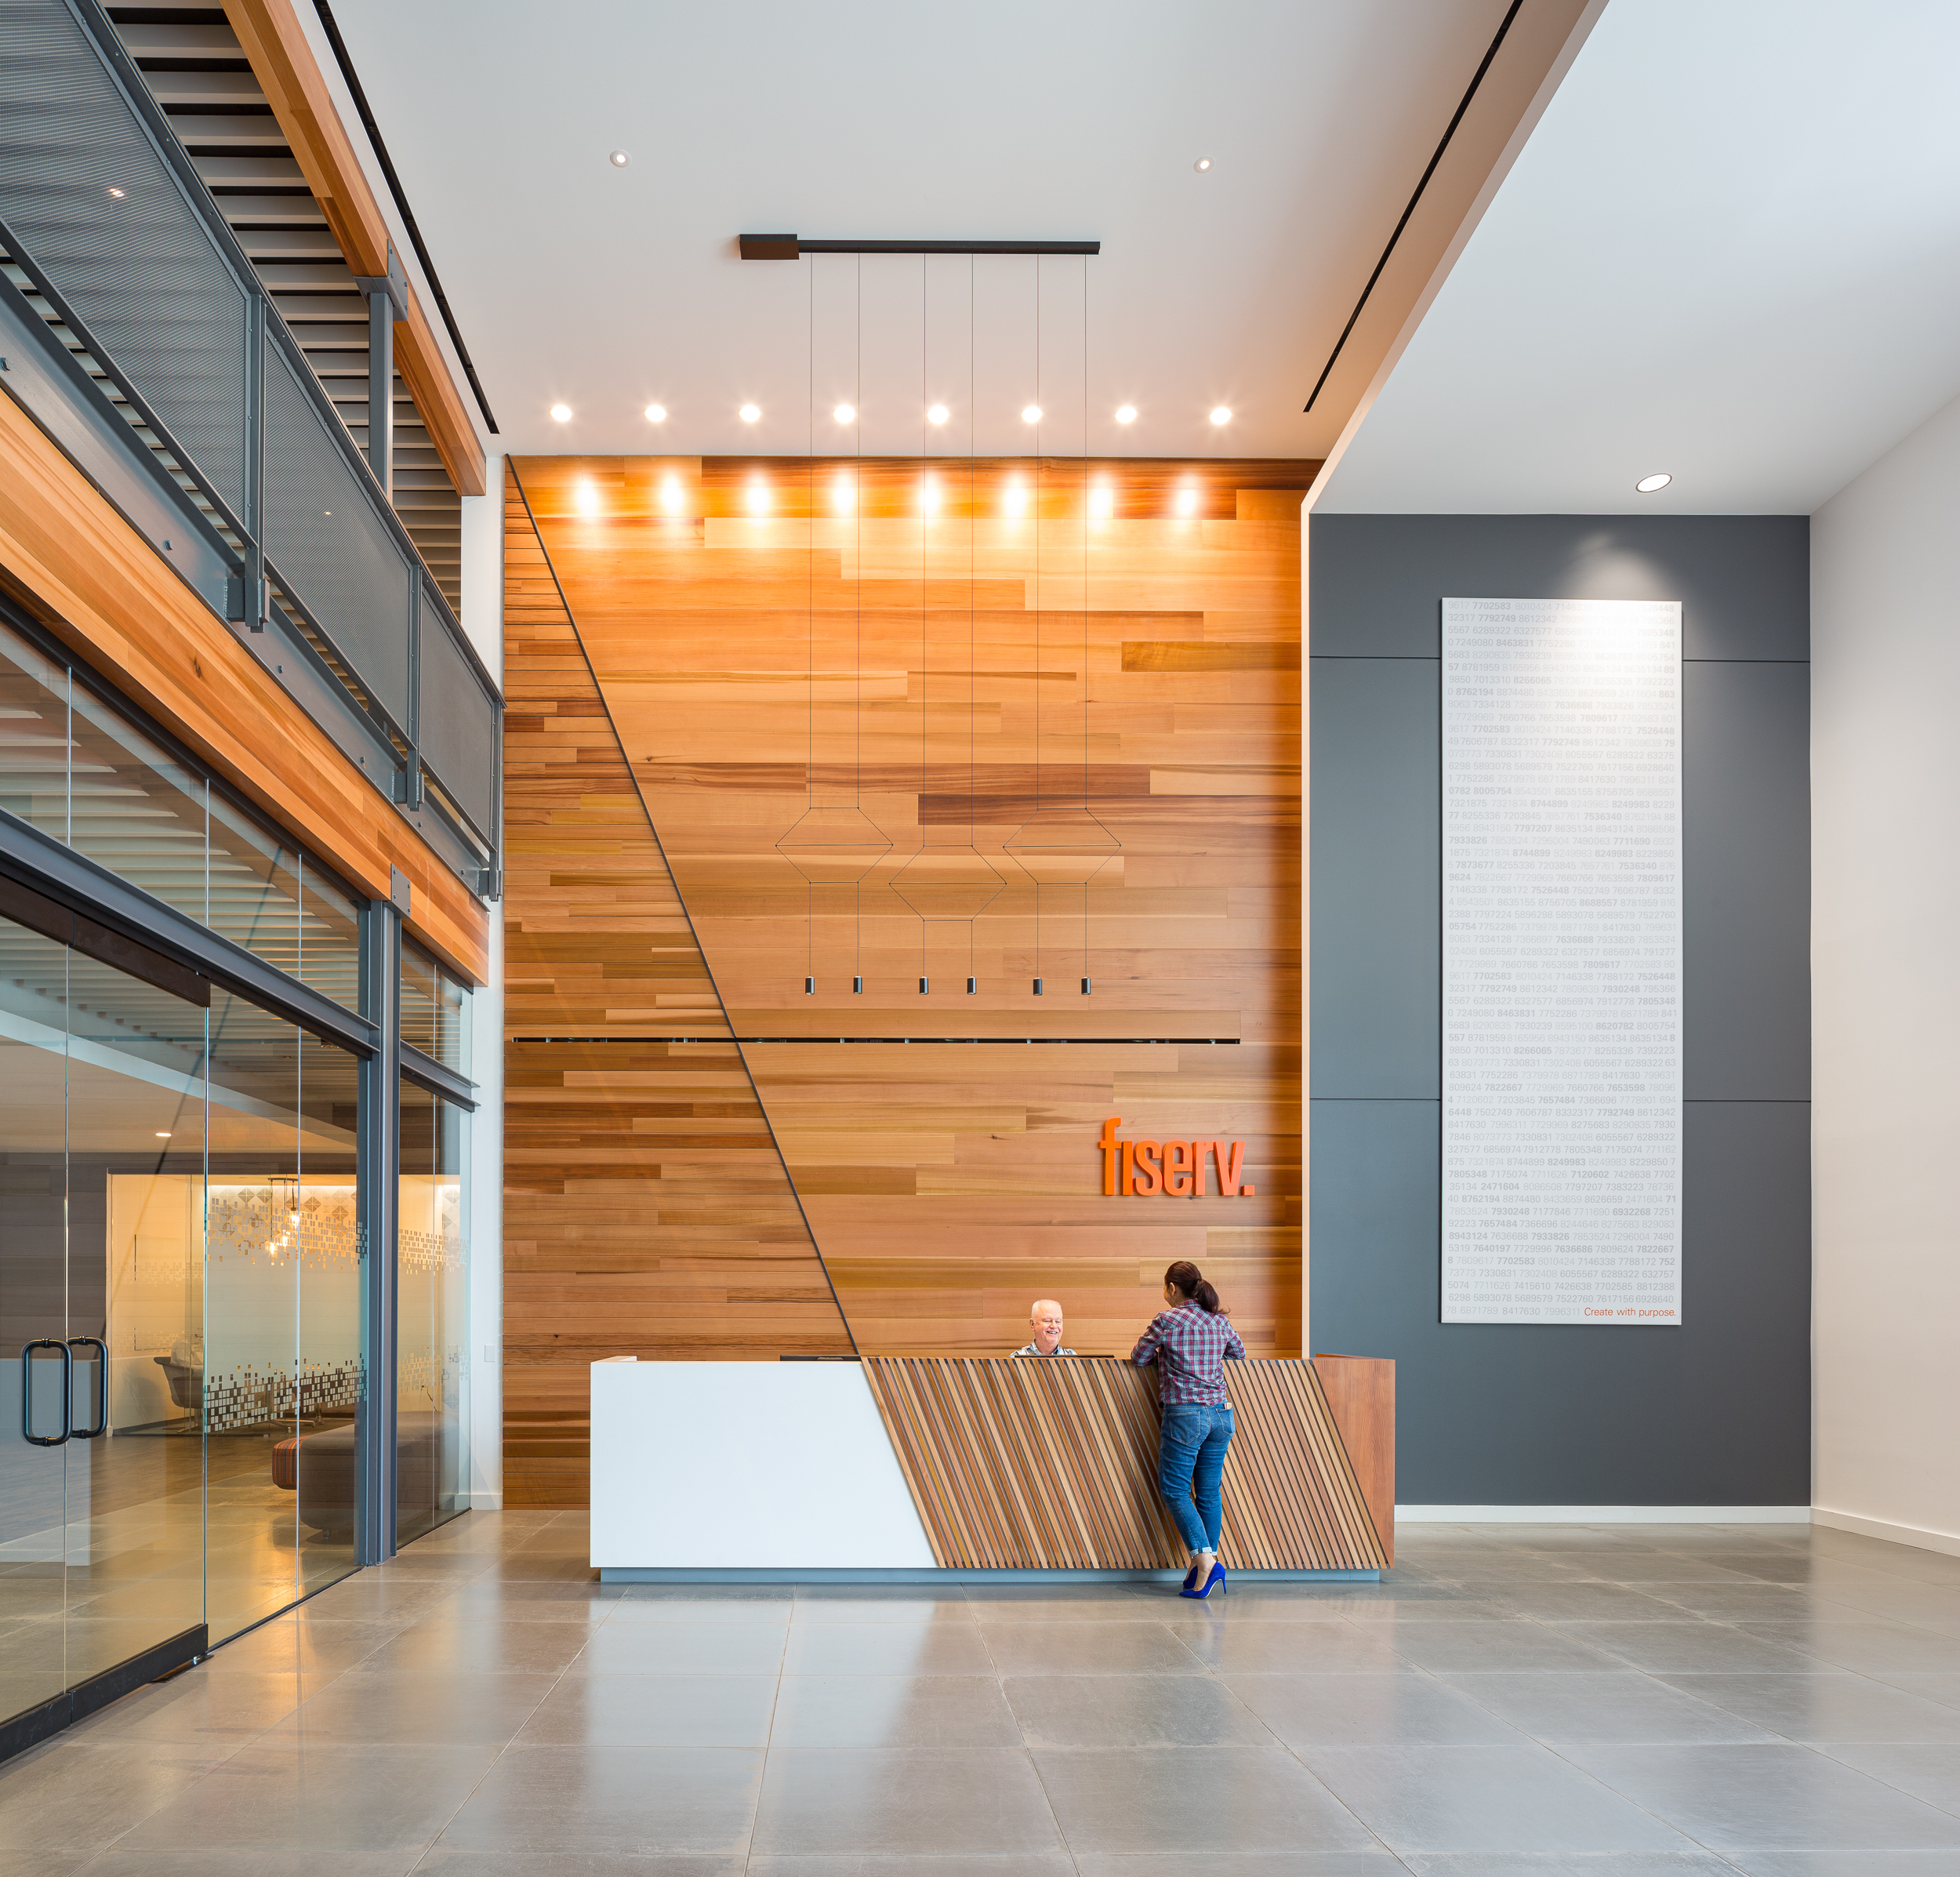 Fiserv - Beaverton, OR / TVS Design